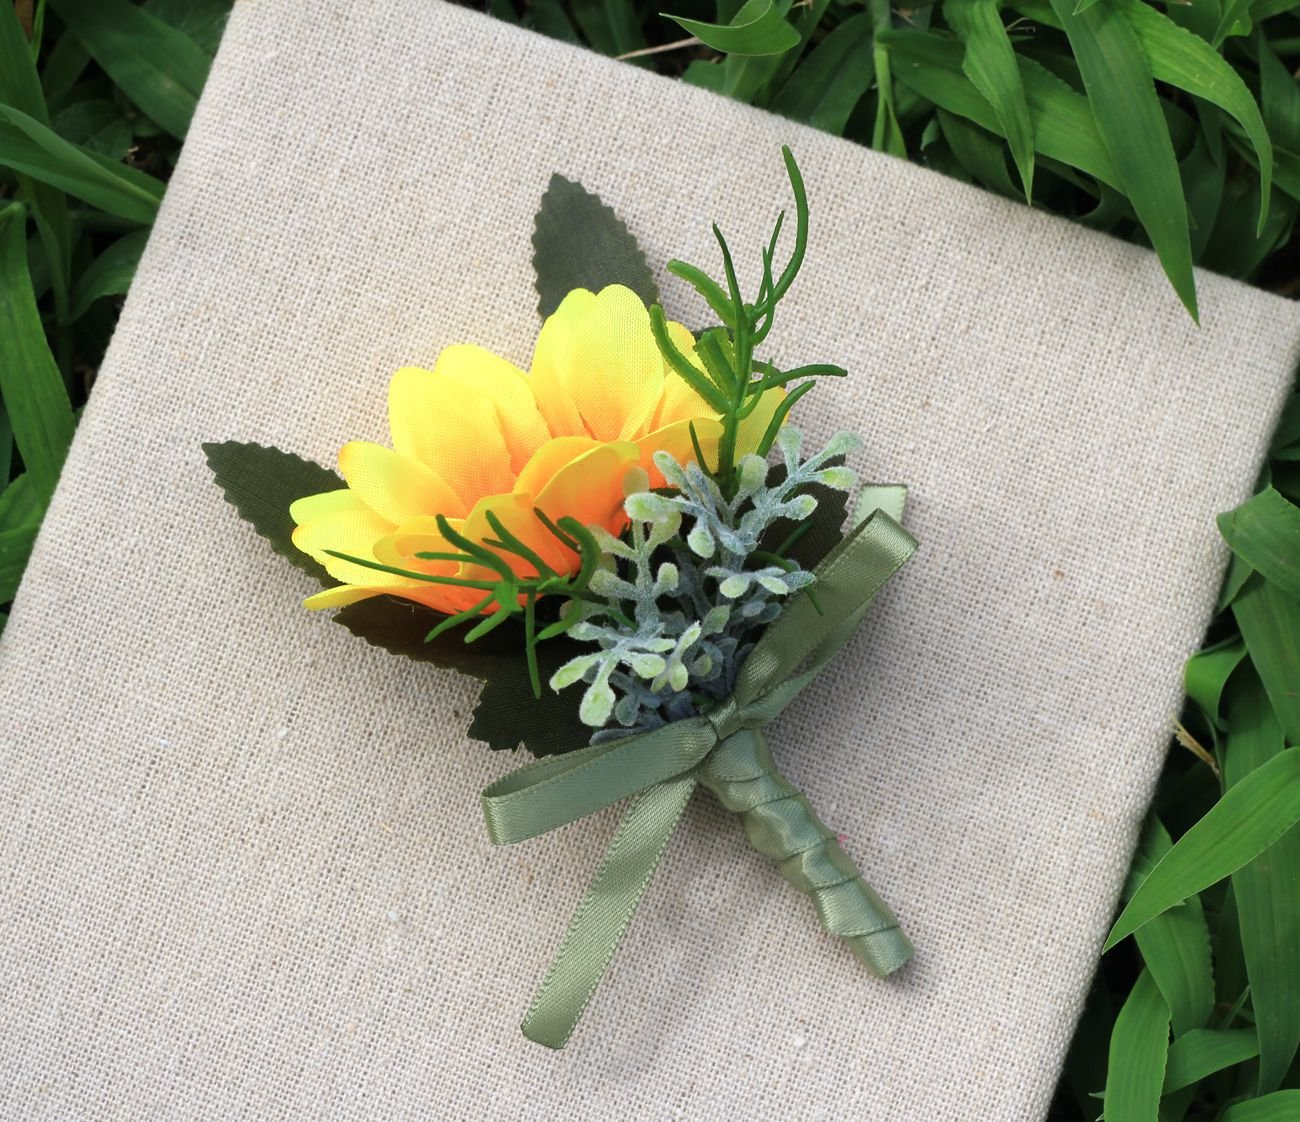 KUPARK 2pcs Artificial Sunflower Wedding Corsage Boutonniere for Party Prom Wedding